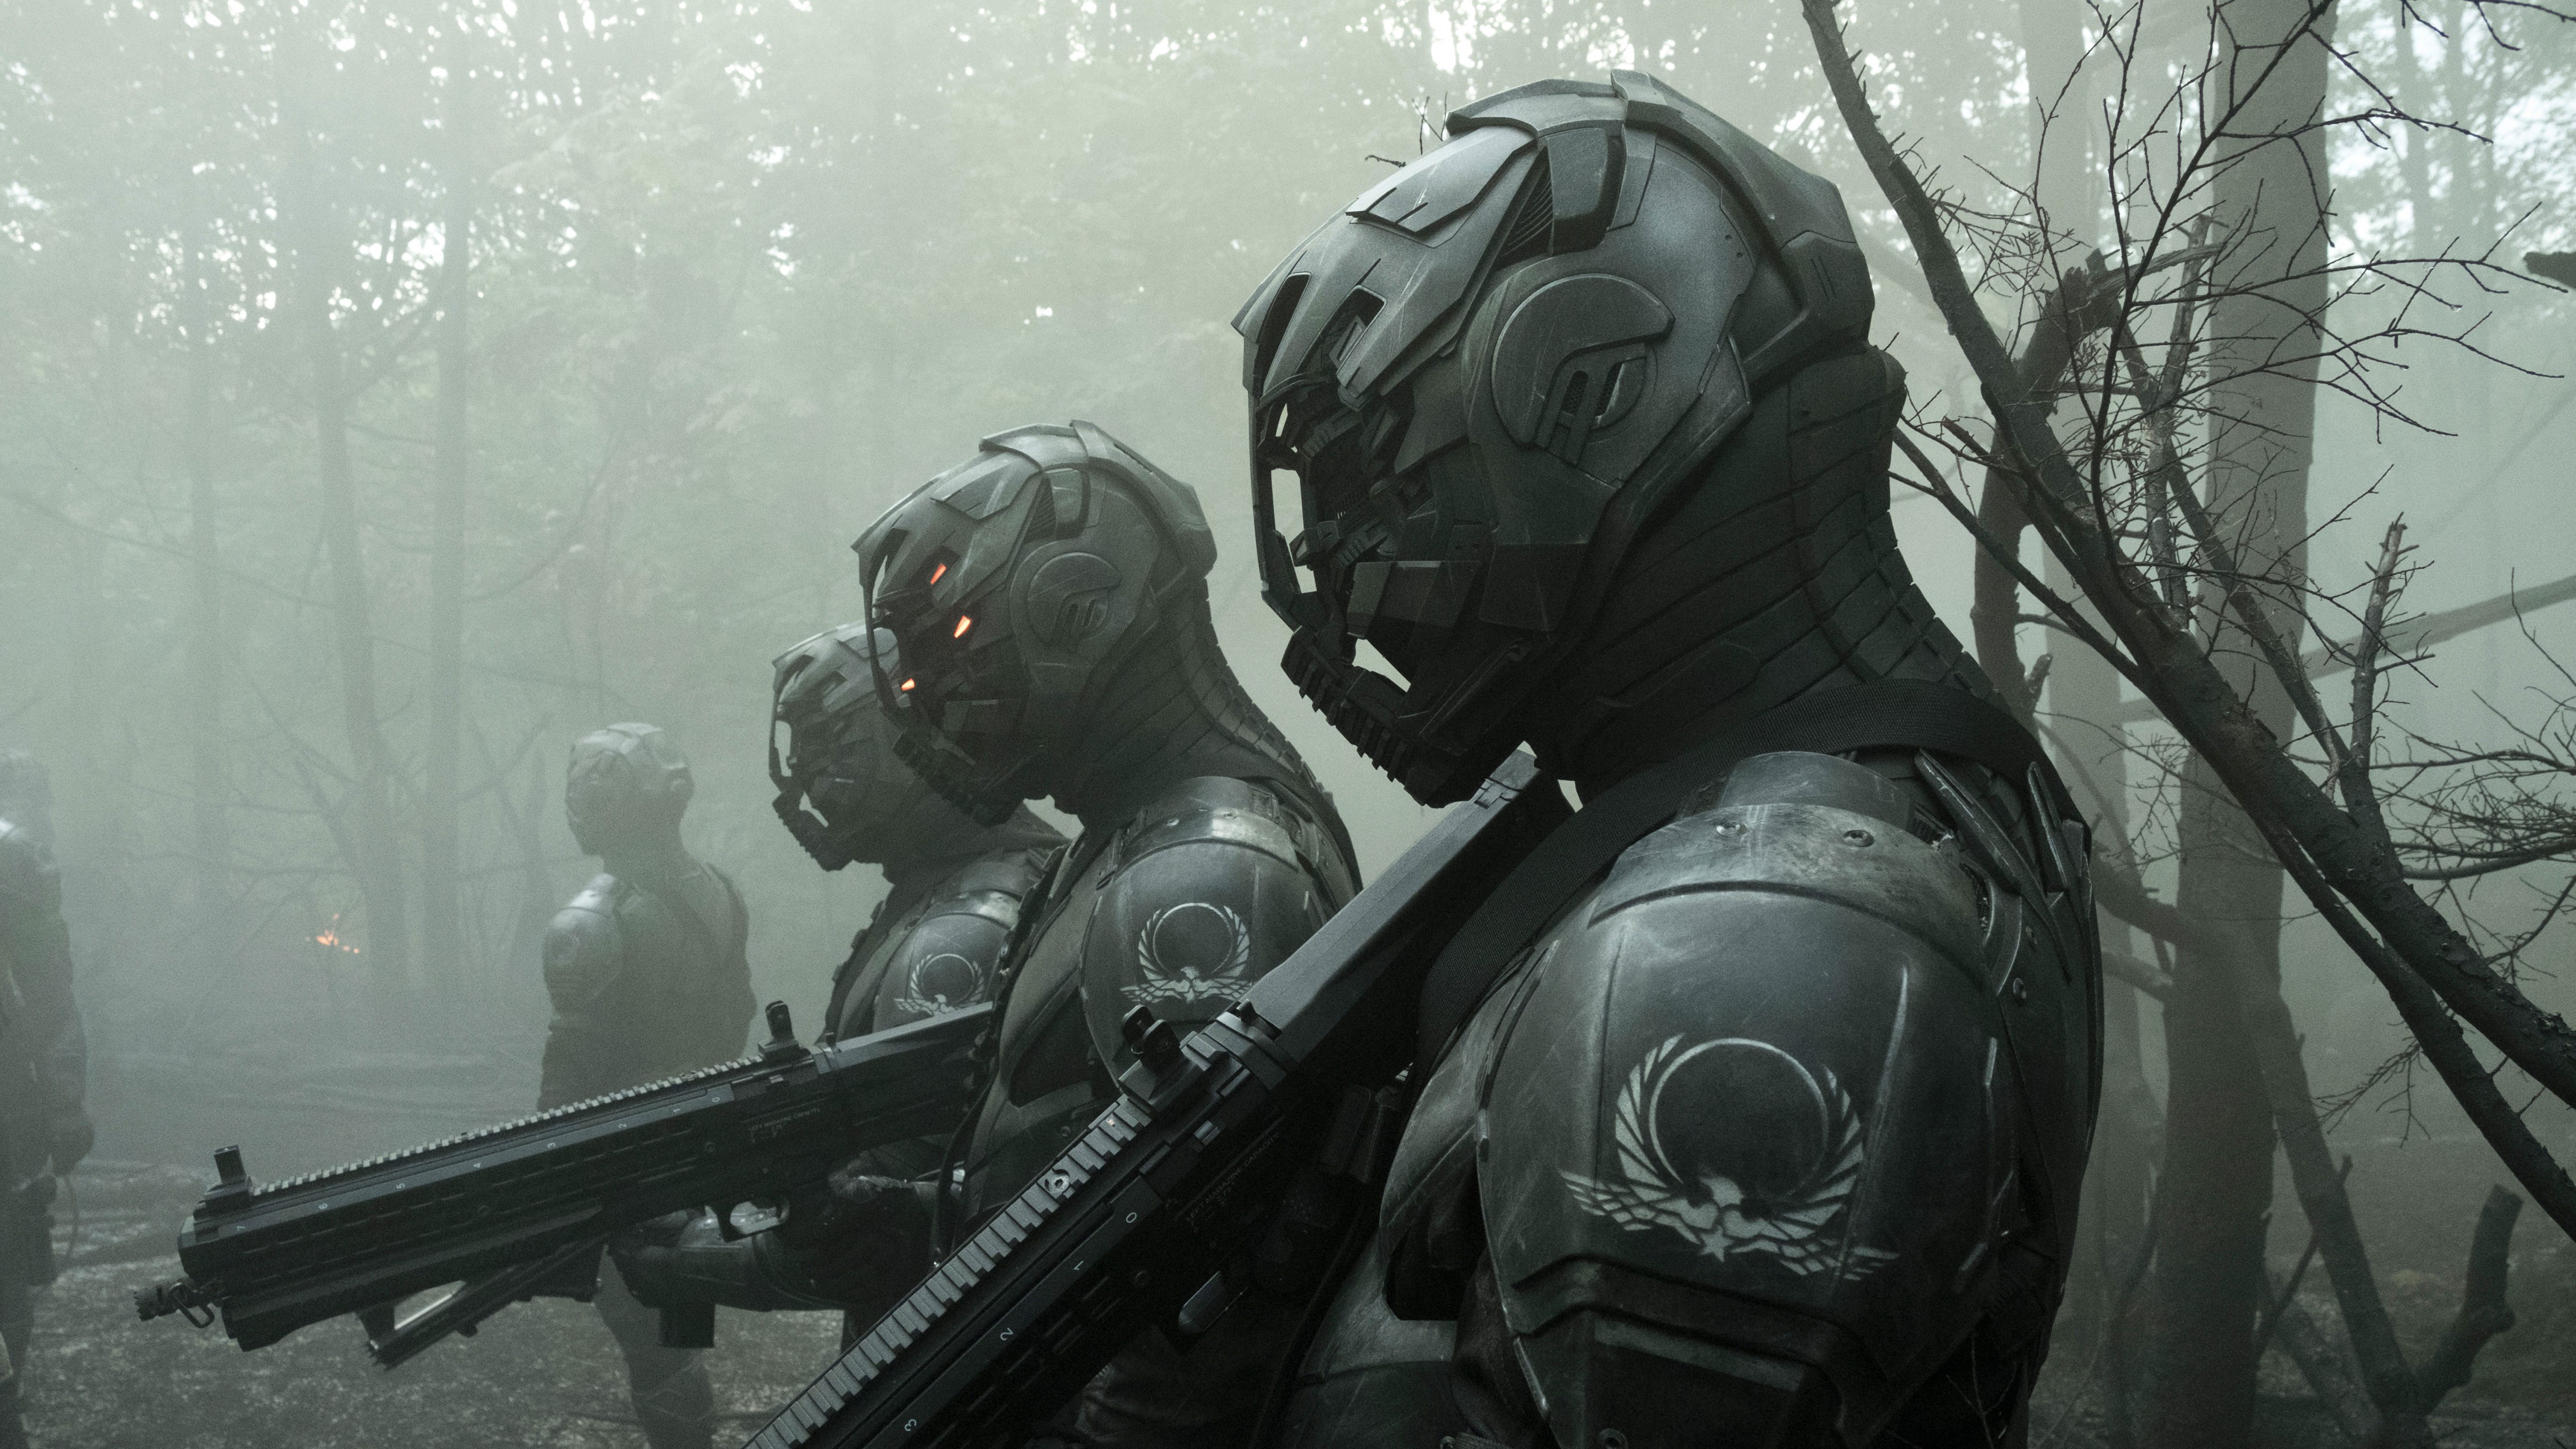 Envoys from Altered Carbon Wallpaper in 5120x2880 Resolution